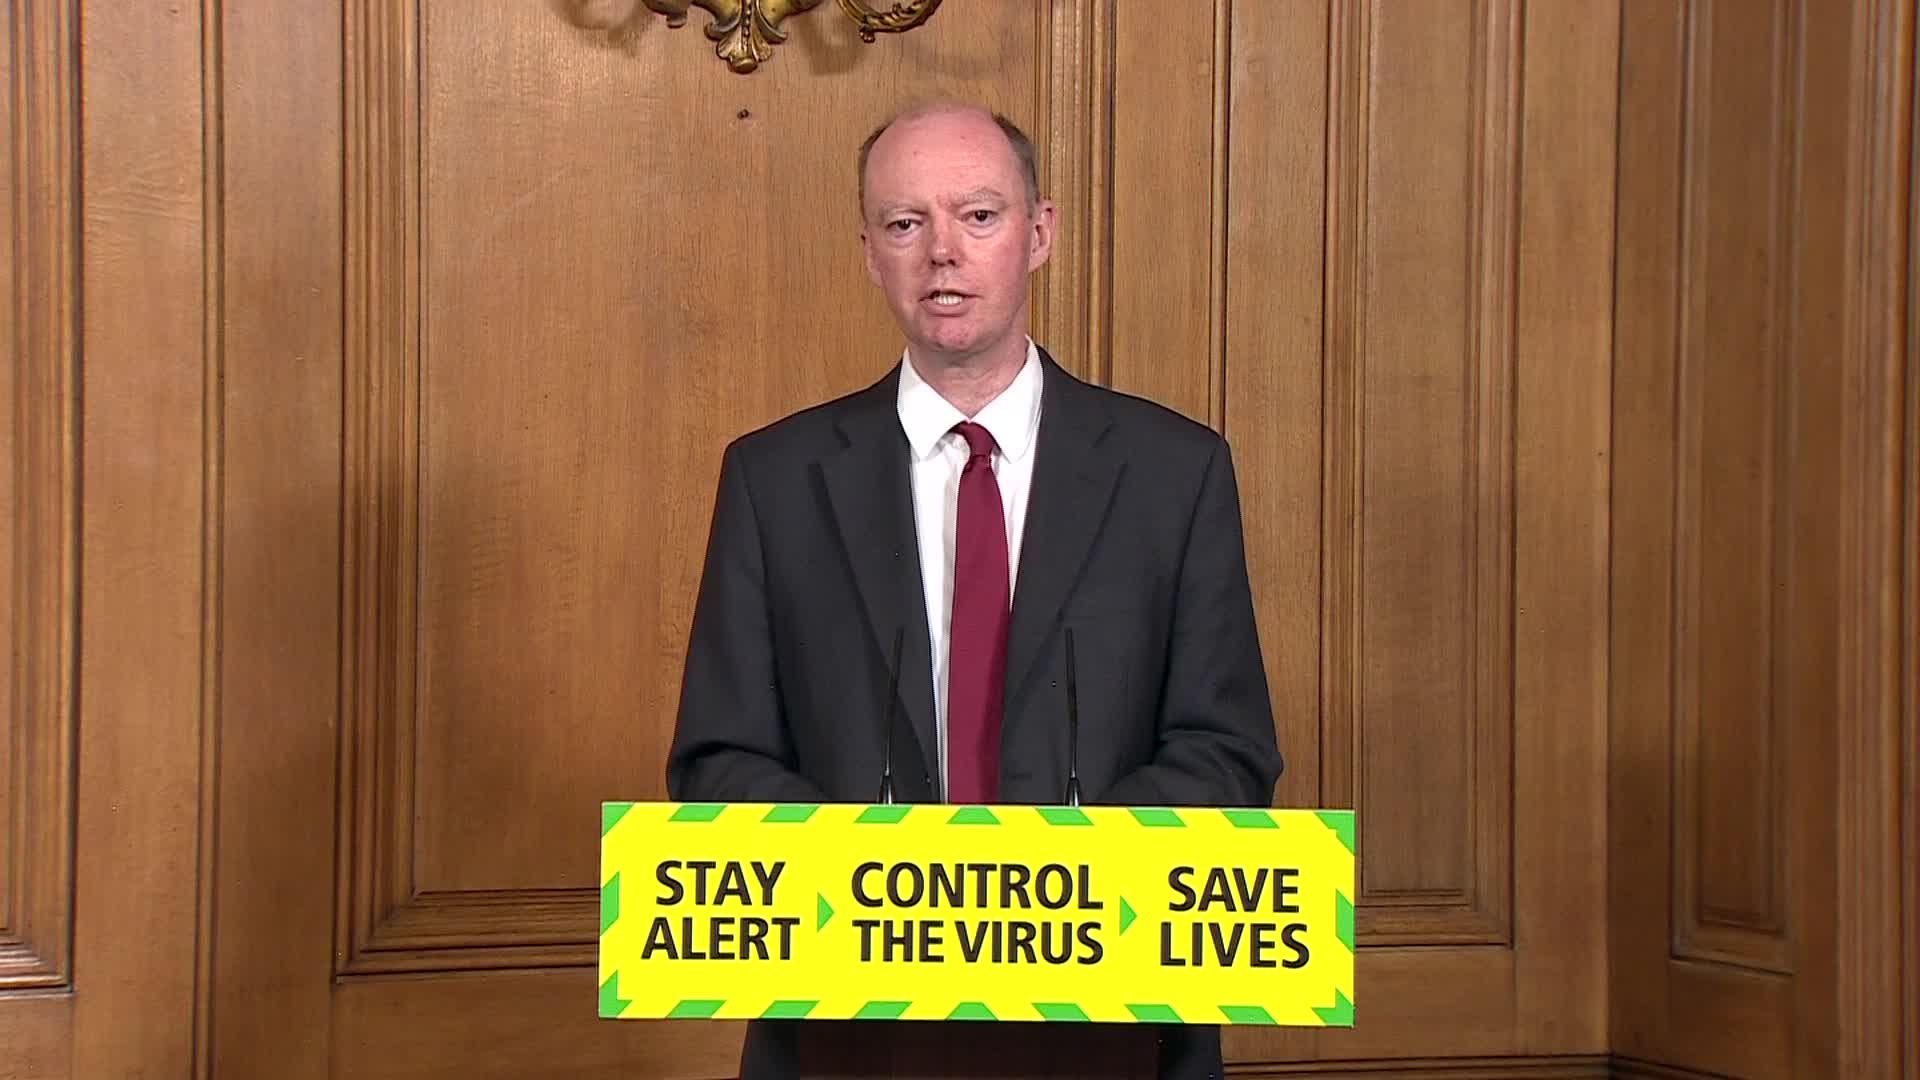 England's Chief Medical Officer, Professor Chris Whitty, speaks during a press conference at 10 Downing Street in London on June 23.